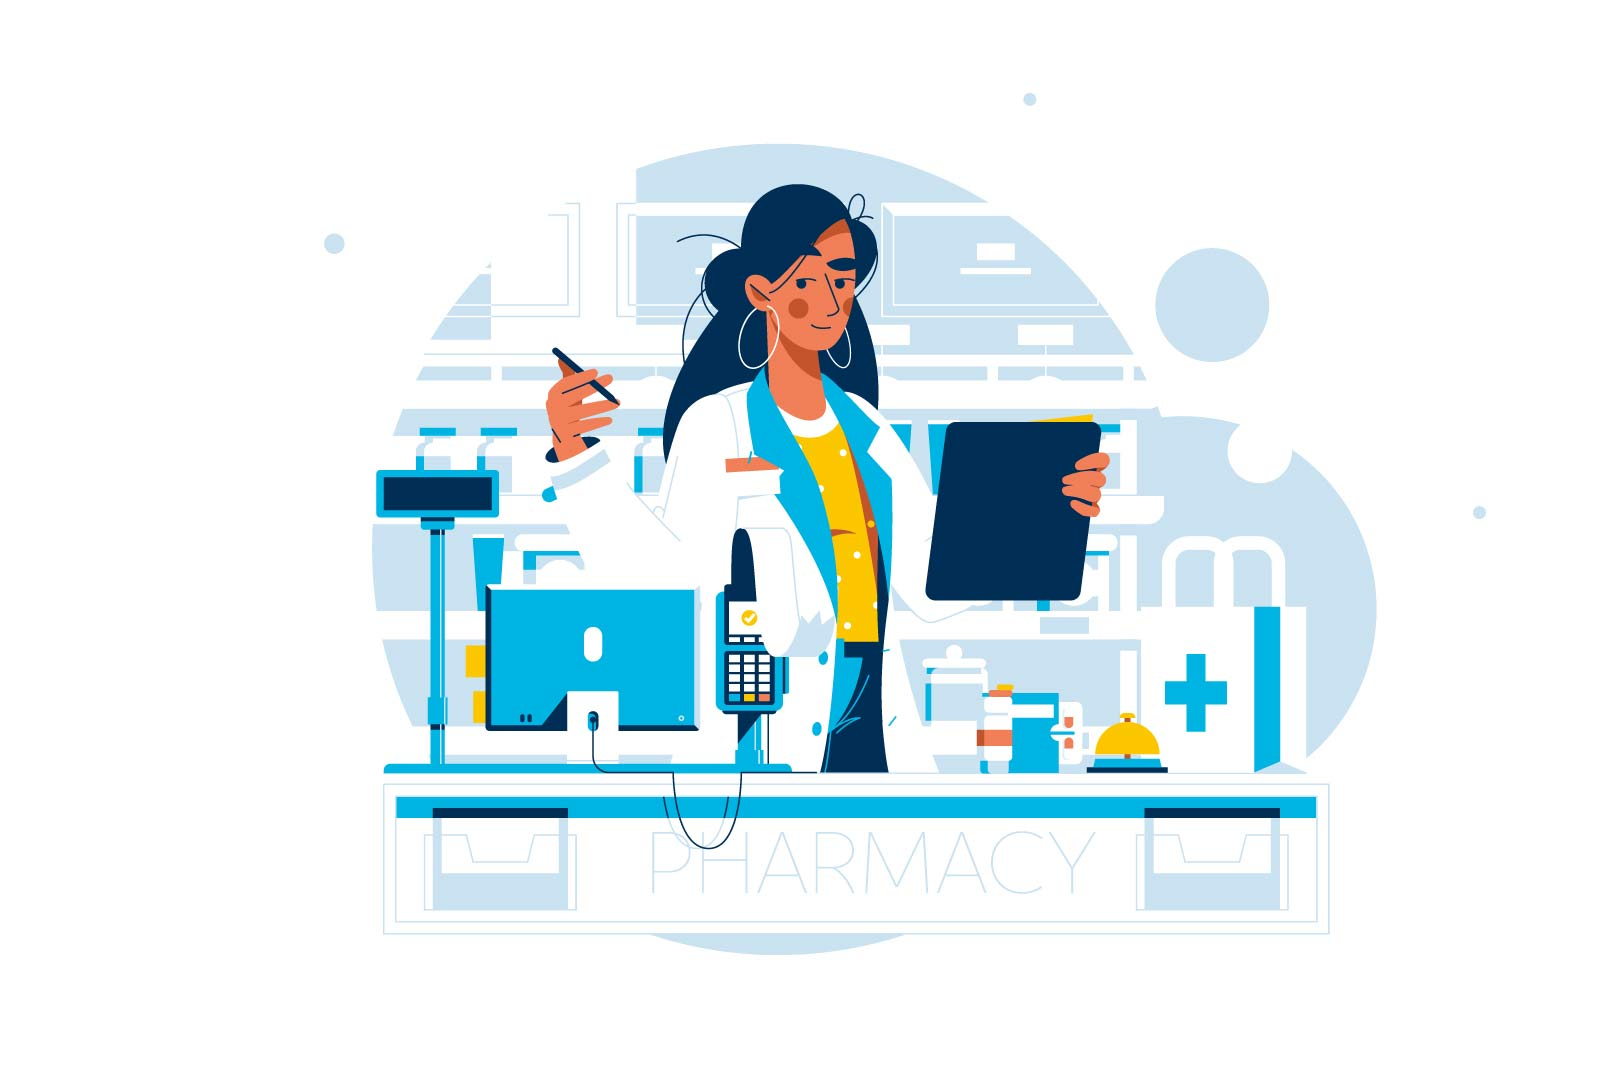 Doctor pharmacist in drugstore standing near medicine pills and bottles vector illustration. Medical staff choosing medicaments flat concept. Pharmacy store idea